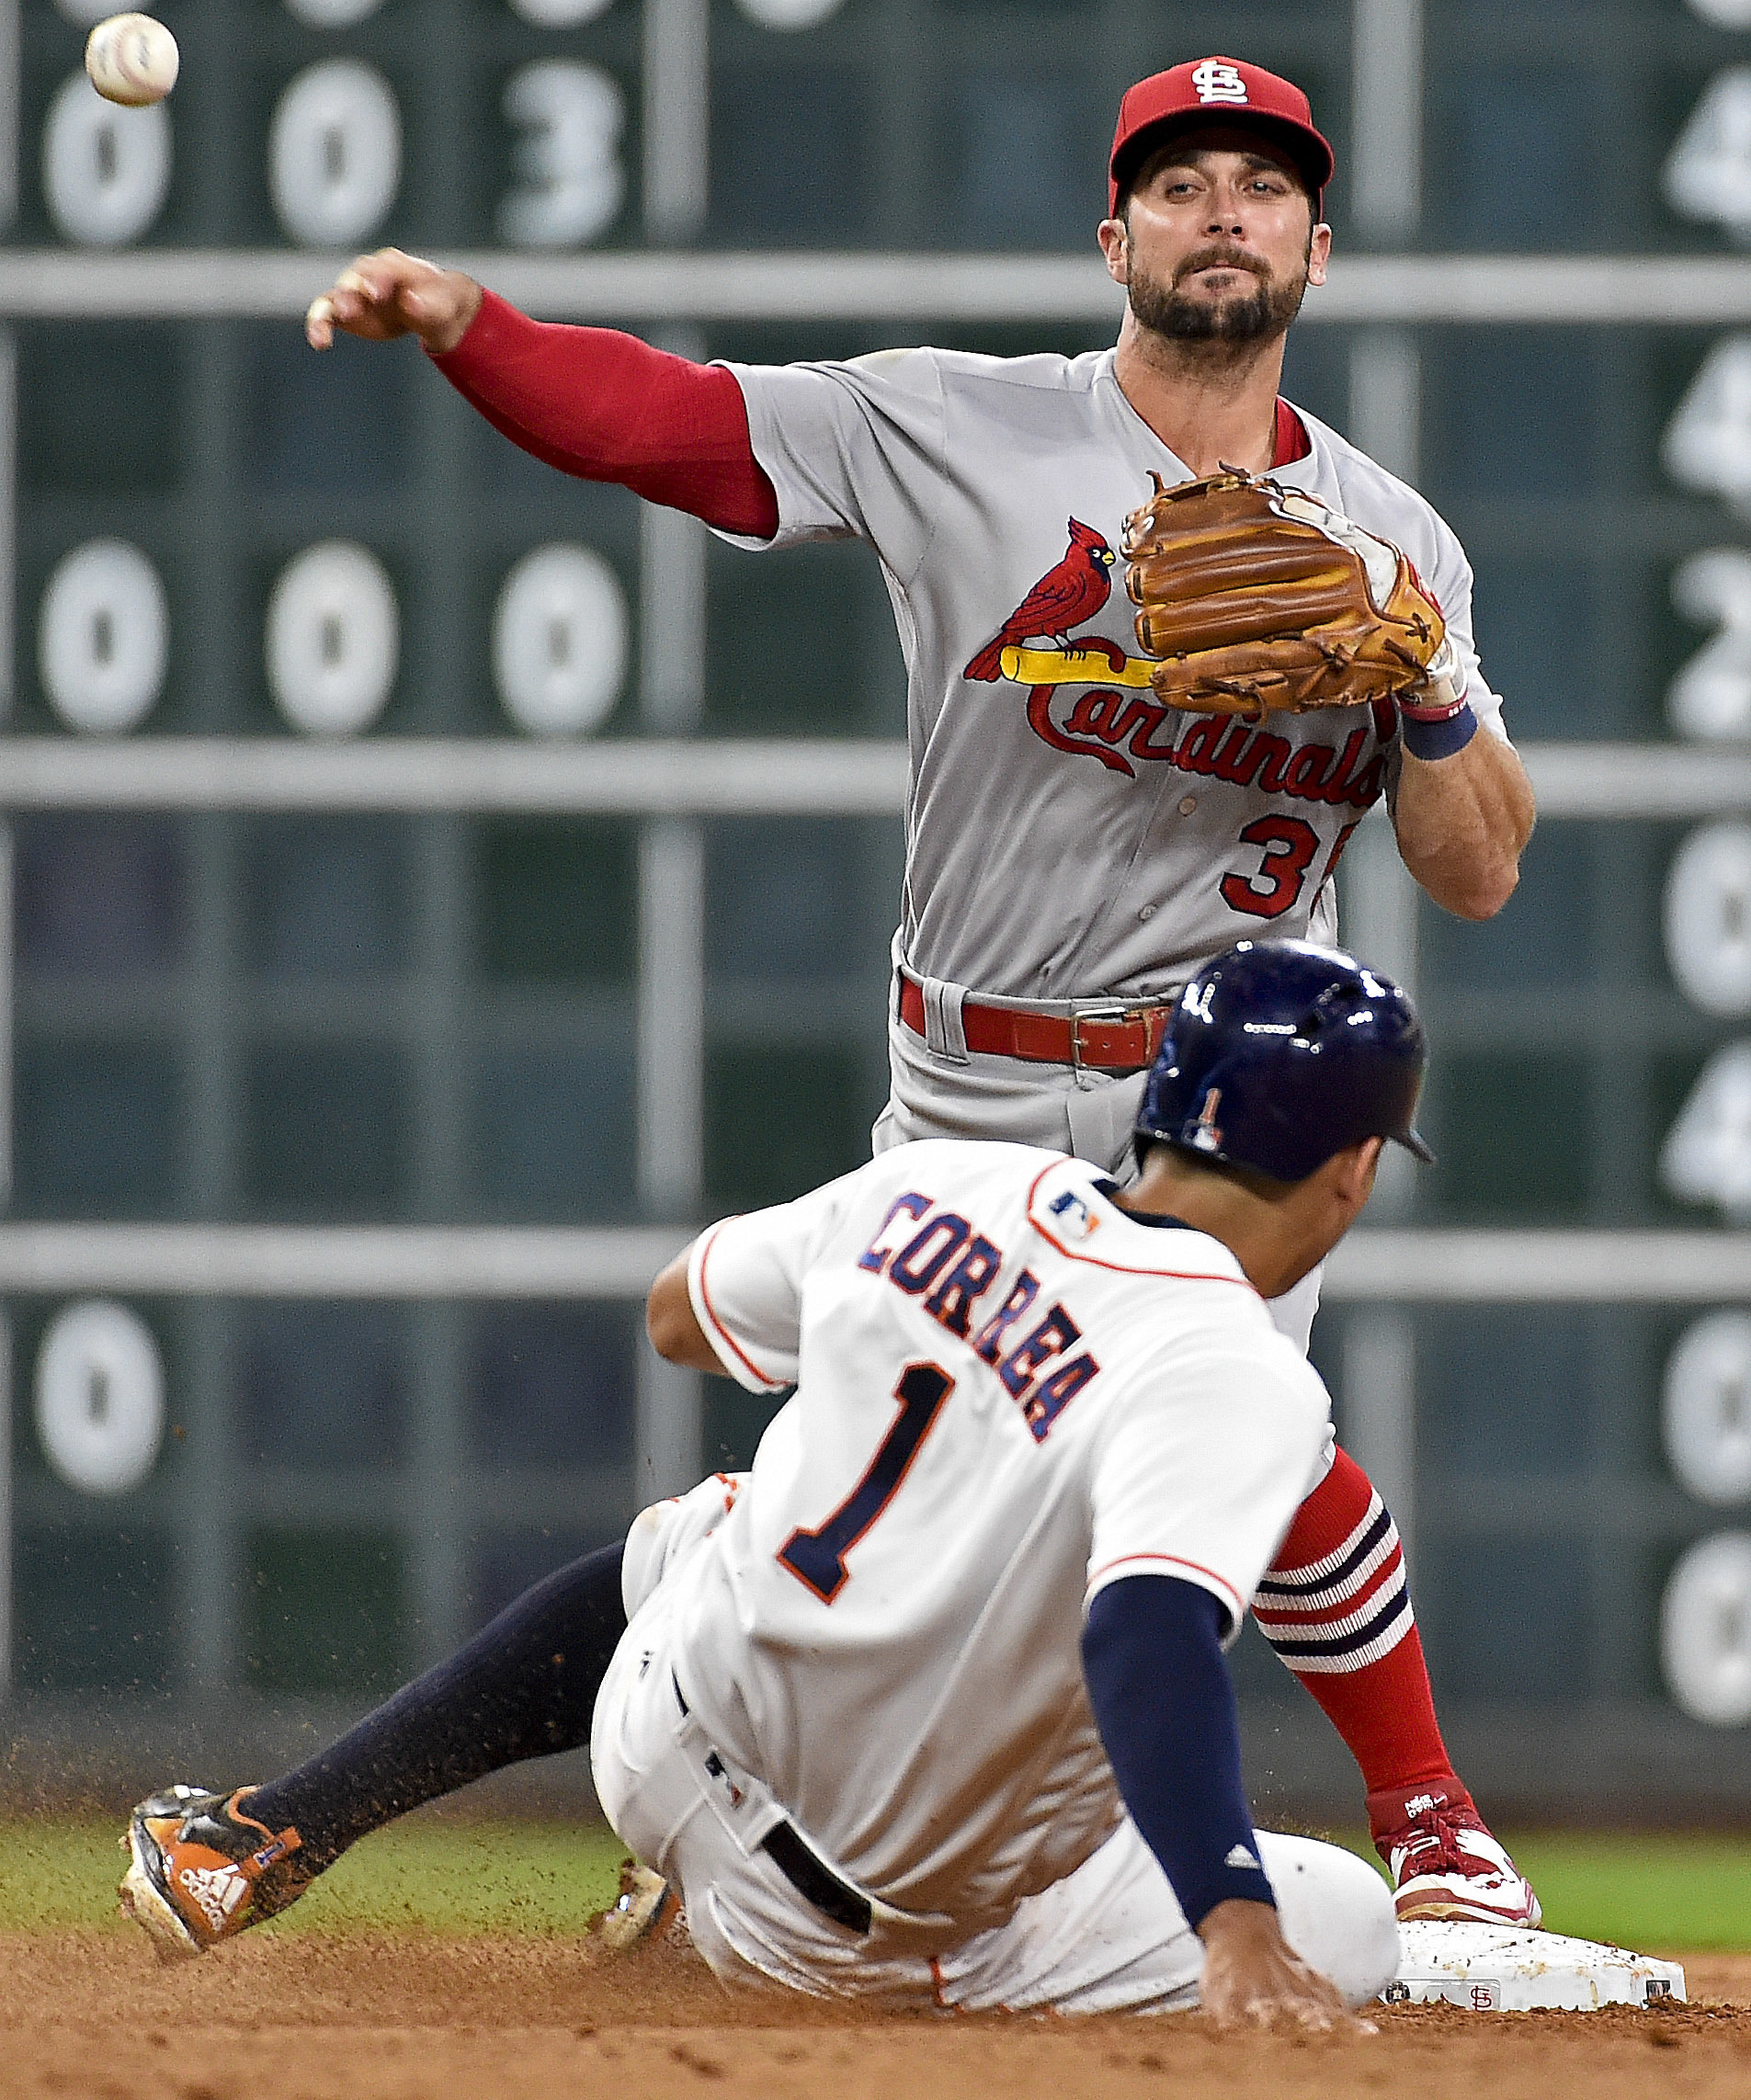 St. Louis Cardinals shortstop Greg Garcia, top, attempts a double play over Houston Astros' Carlos Correa during the seventh inning of a baseball game, Tuesday, Aug. 16, 2016, in Houston. Martin Gonzalez was safe at first. (AP Photo/Eric Christian Smith)